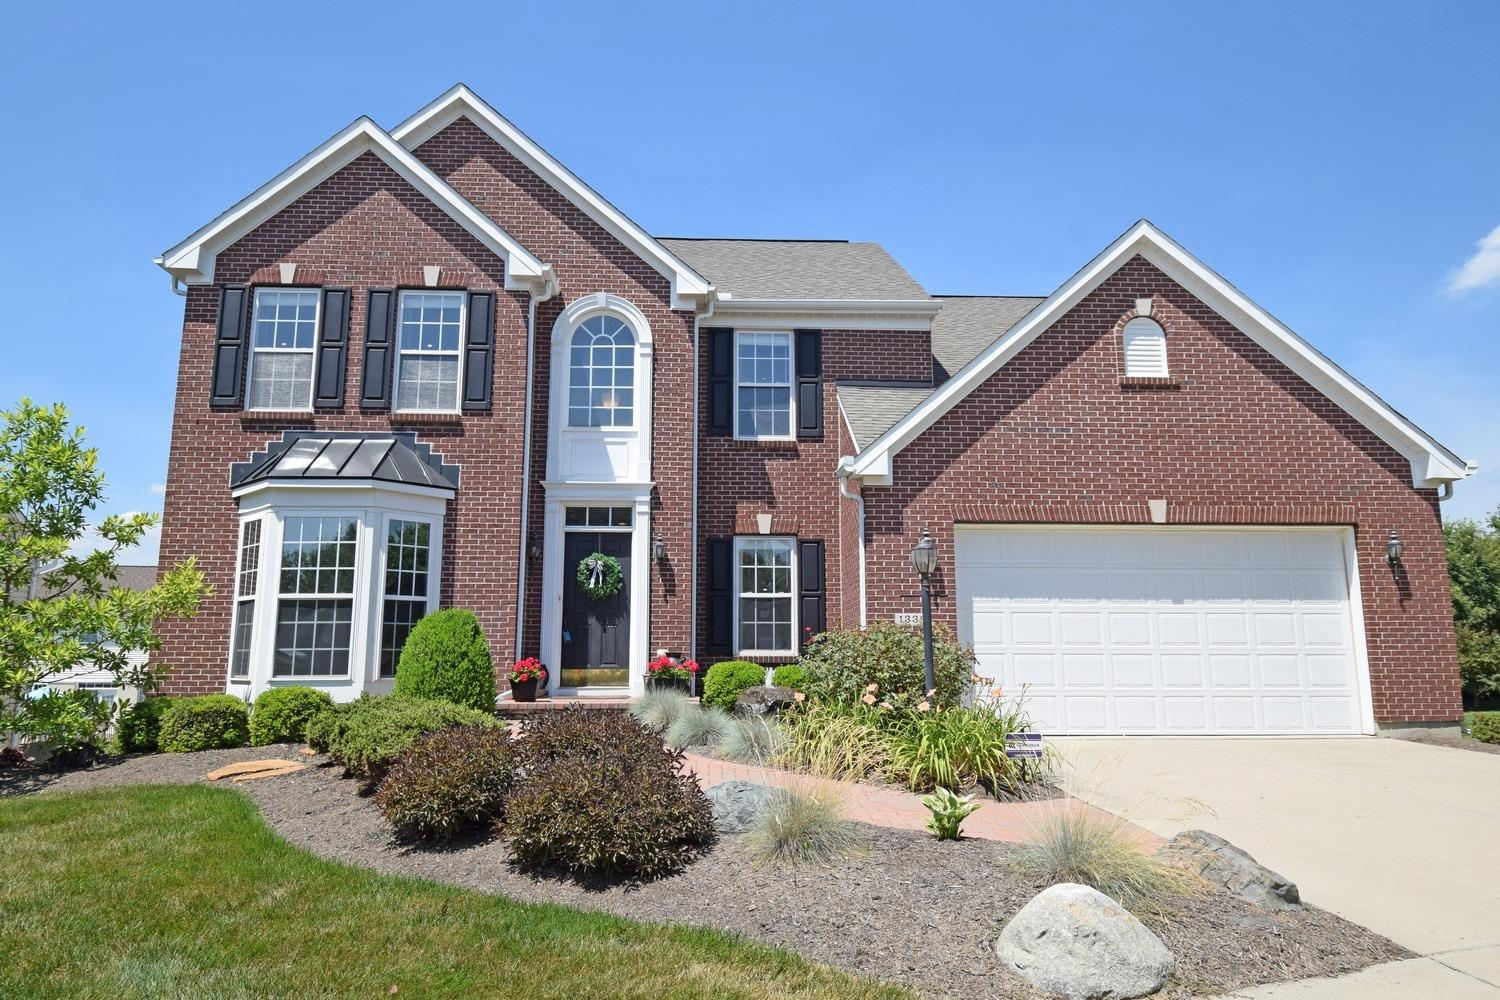 1339 Oakhurst Ct Turtle Creek Twp., OH